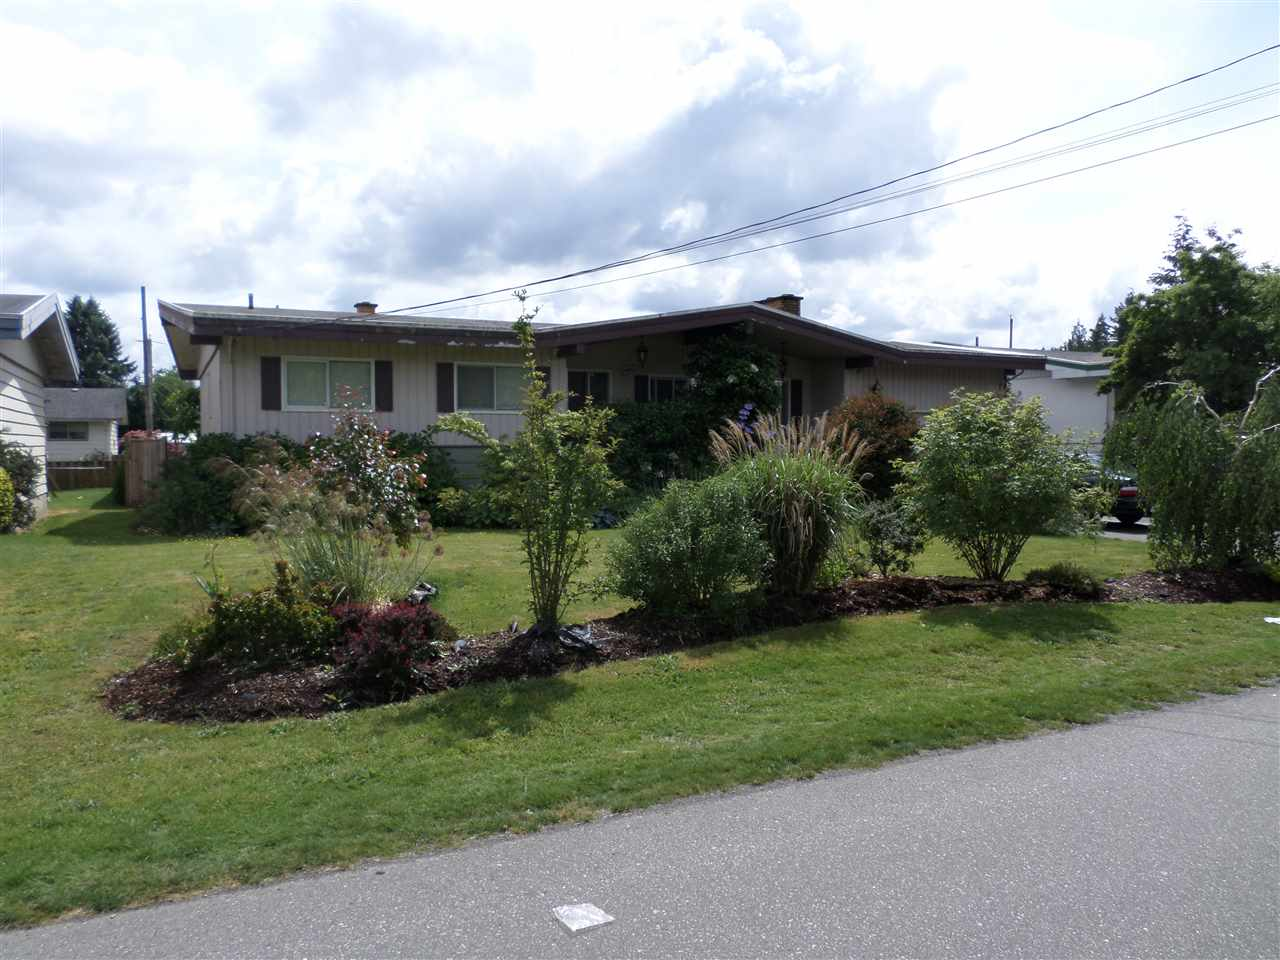 Photo 2: 31846 HOPEDALE Avenue in Abbotsford: Abbotsford West House for sale : MLS® # R2071353